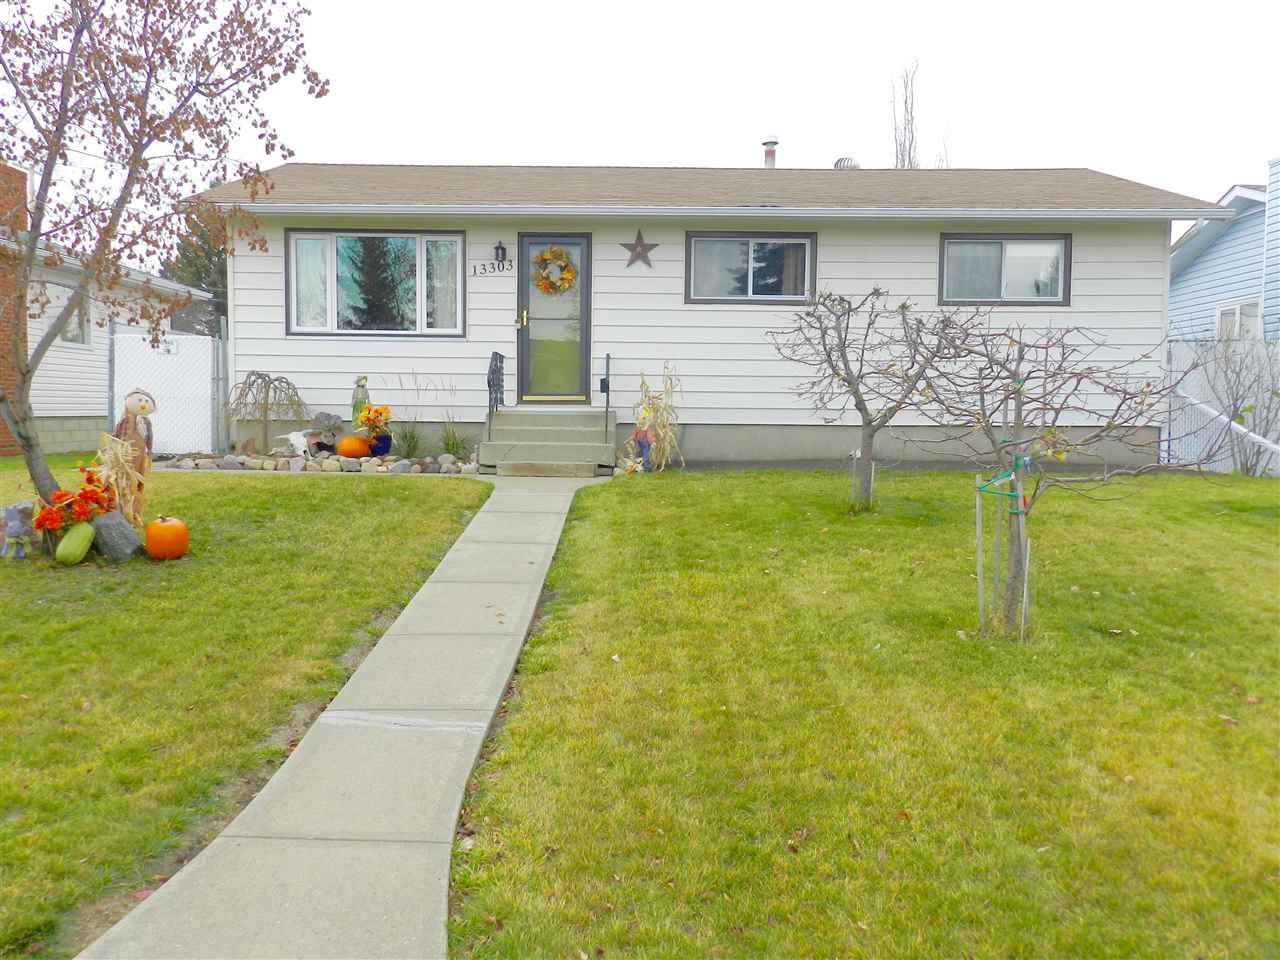 Main Photo: 13303 73 Street in Edmonton: Zone 02 House for sale : MLS®# E4134572